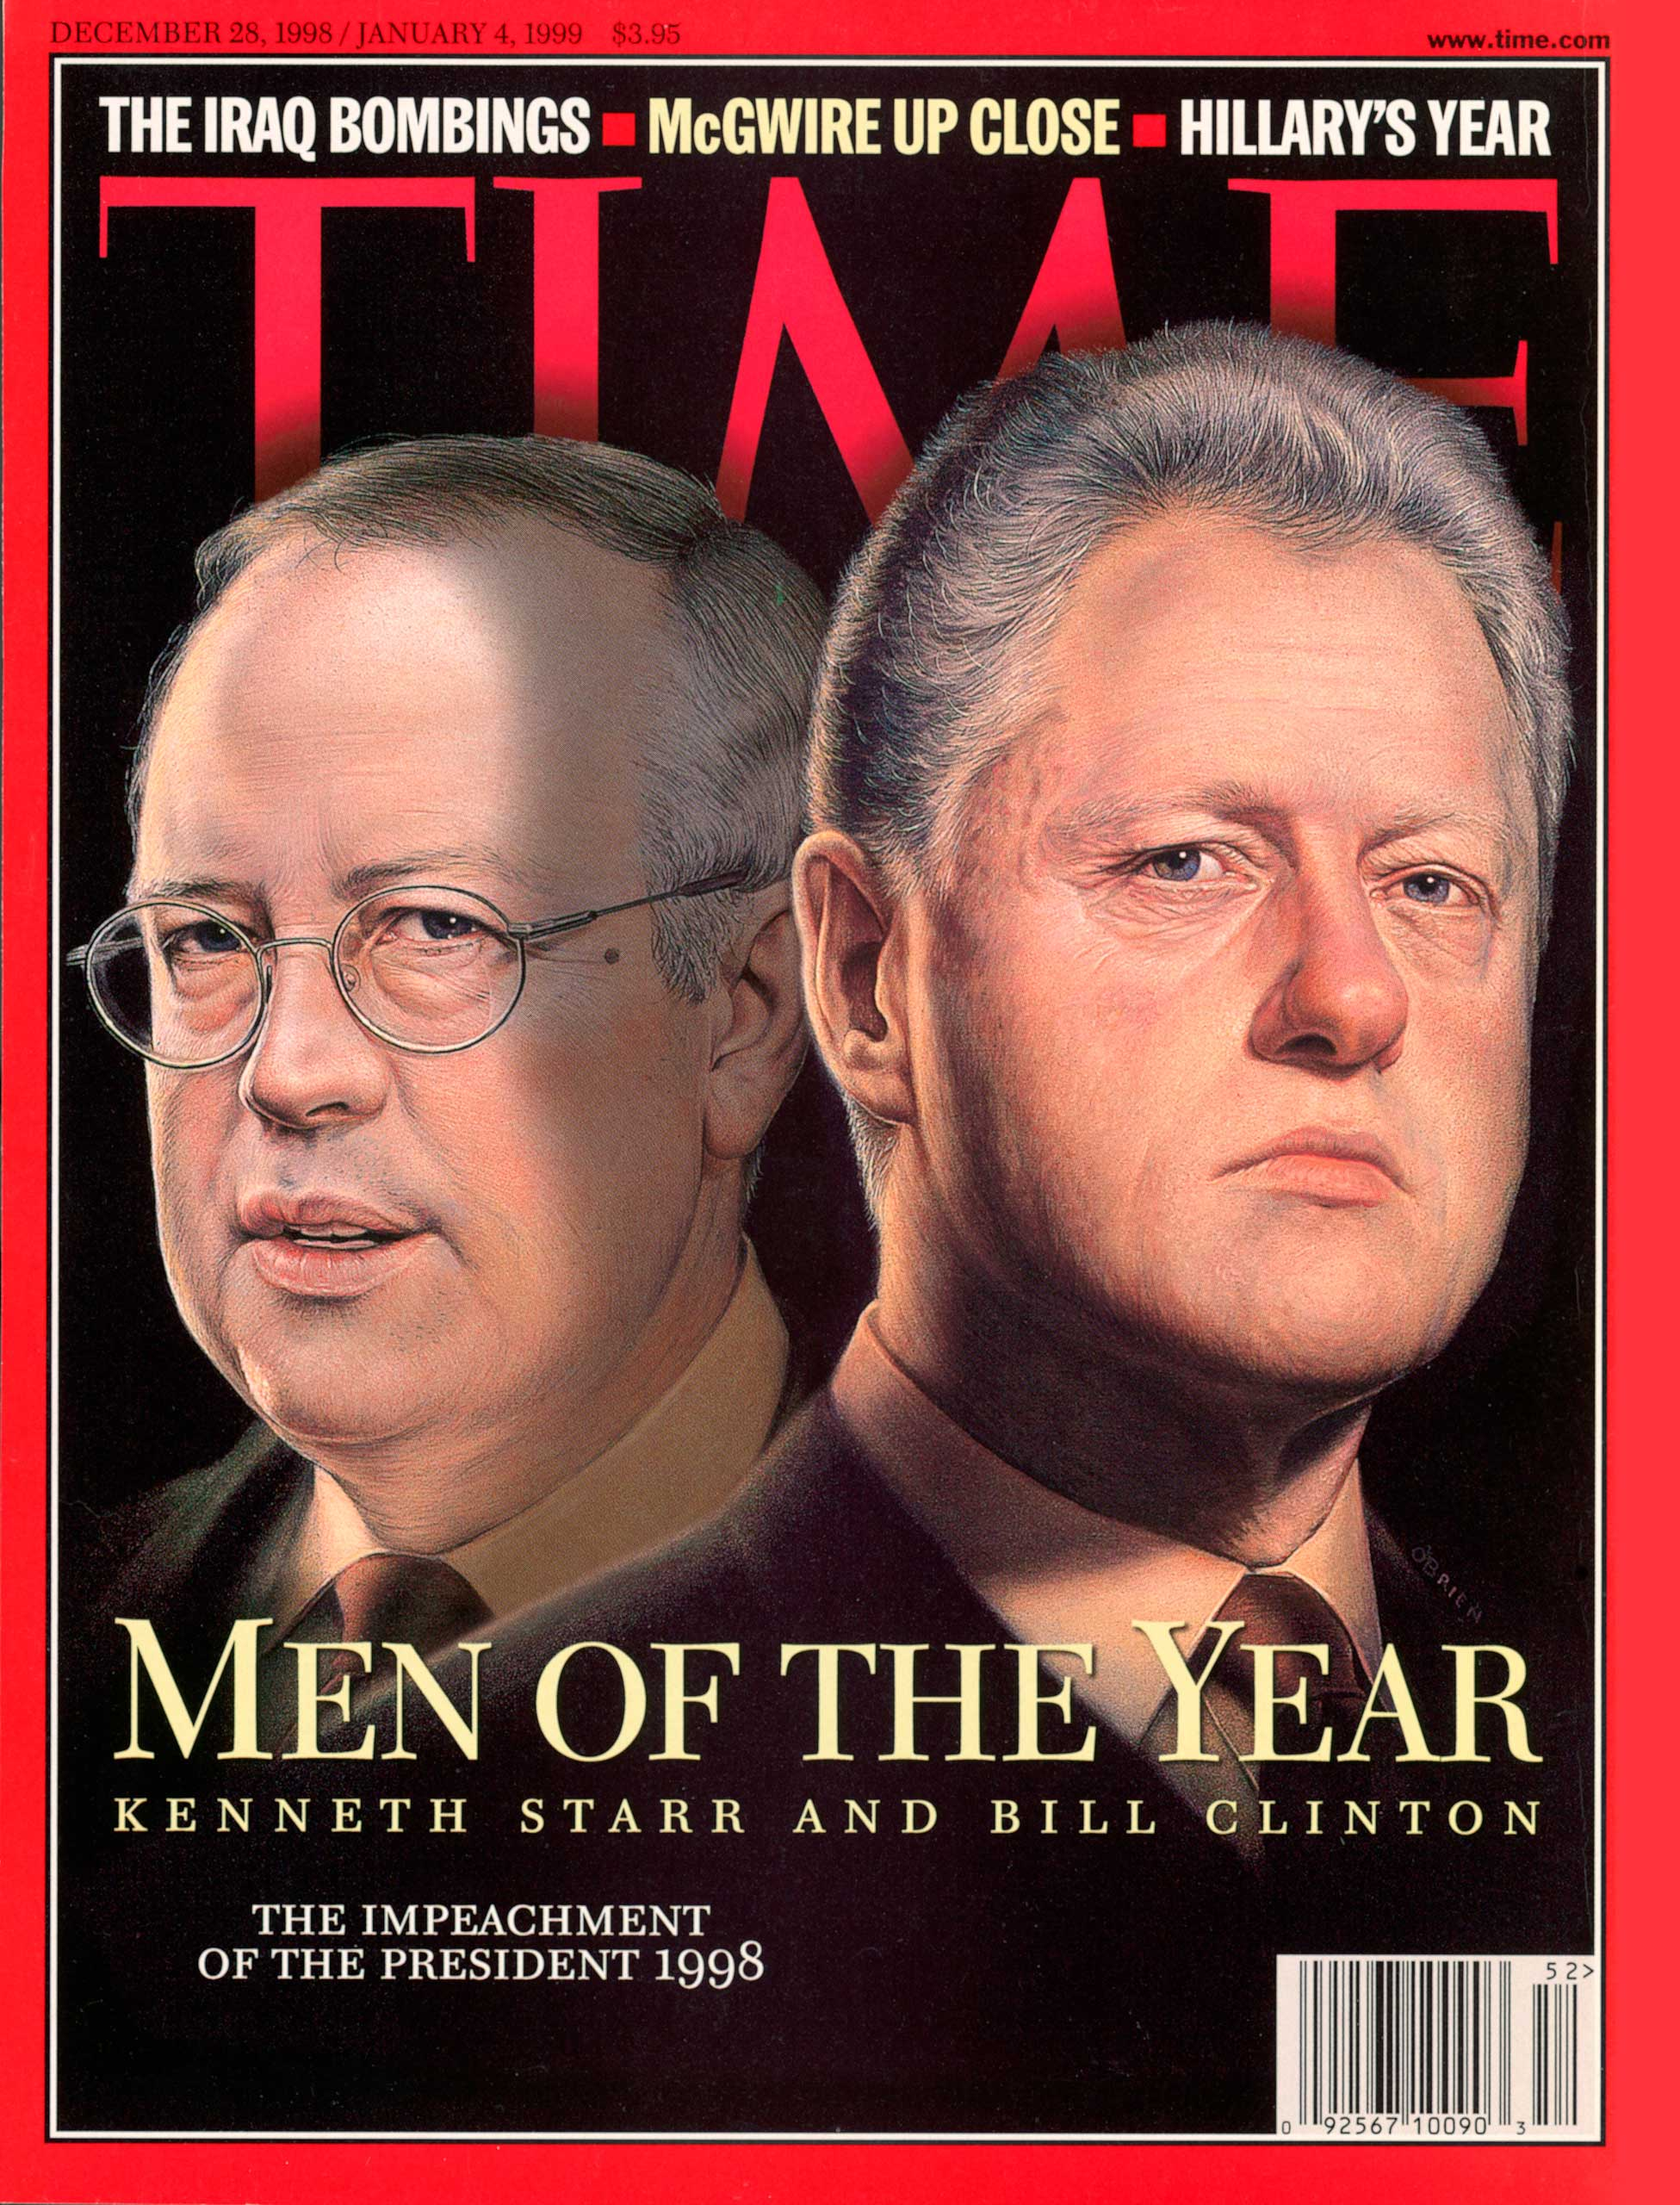 1998: Kenneth Starr and Bill Clinton